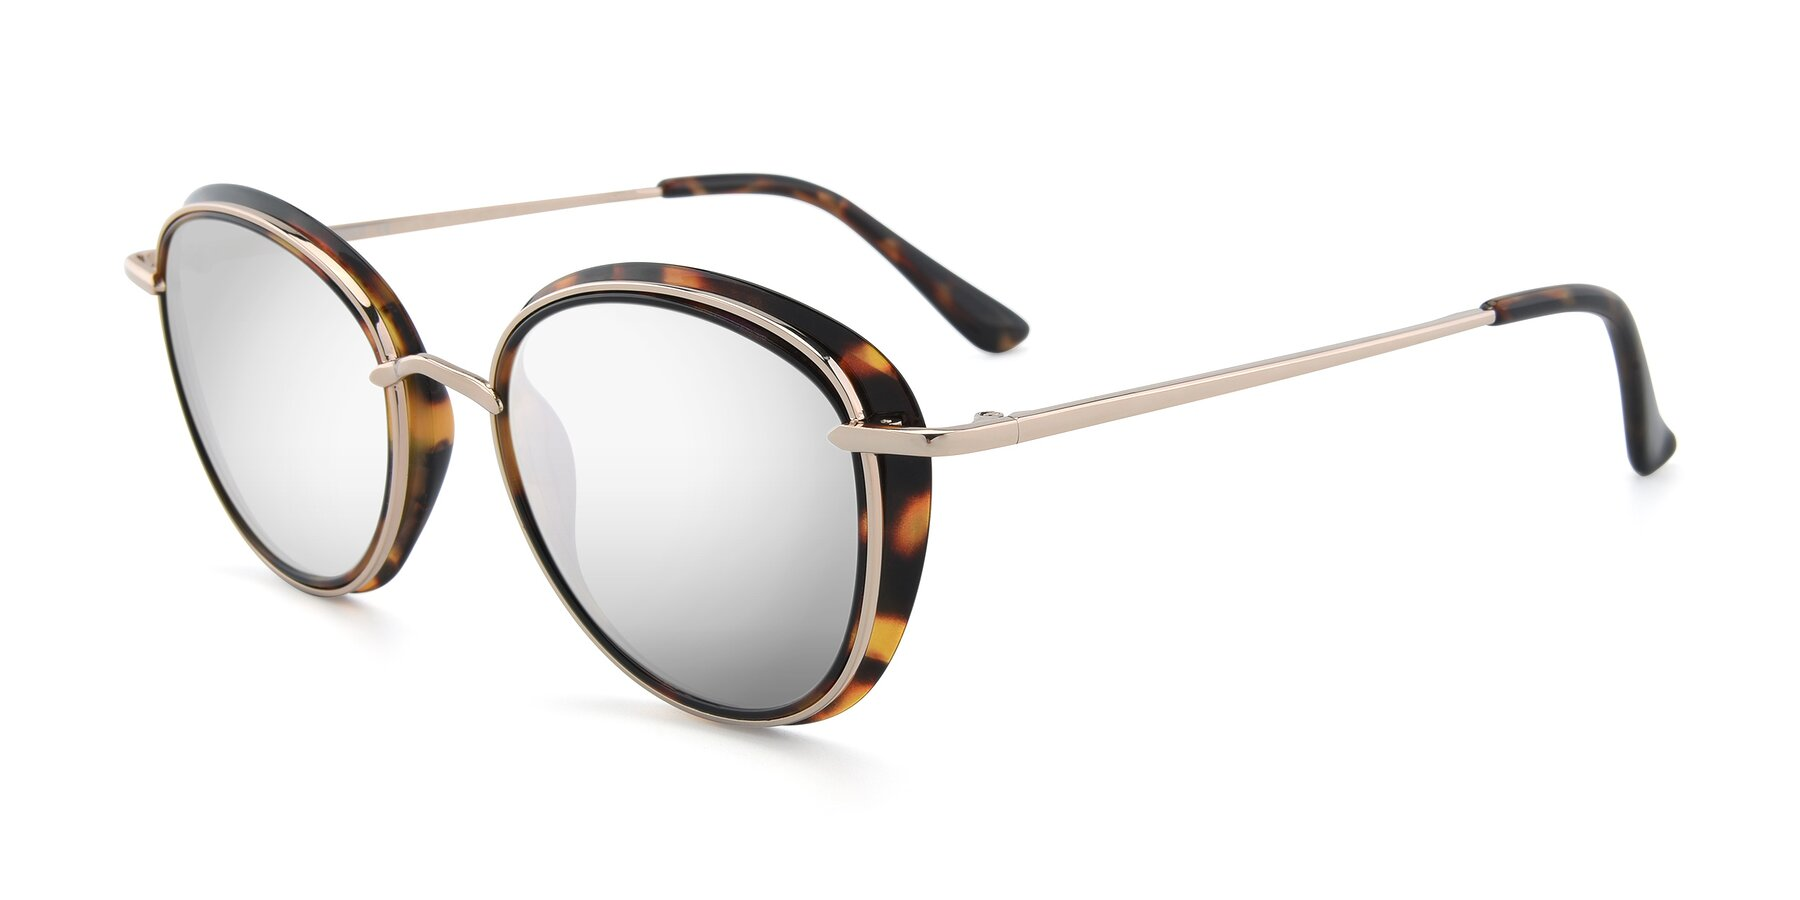 Angle of Cosmopolitan in Tortoise-Silver with Silver Mirrored Lenses